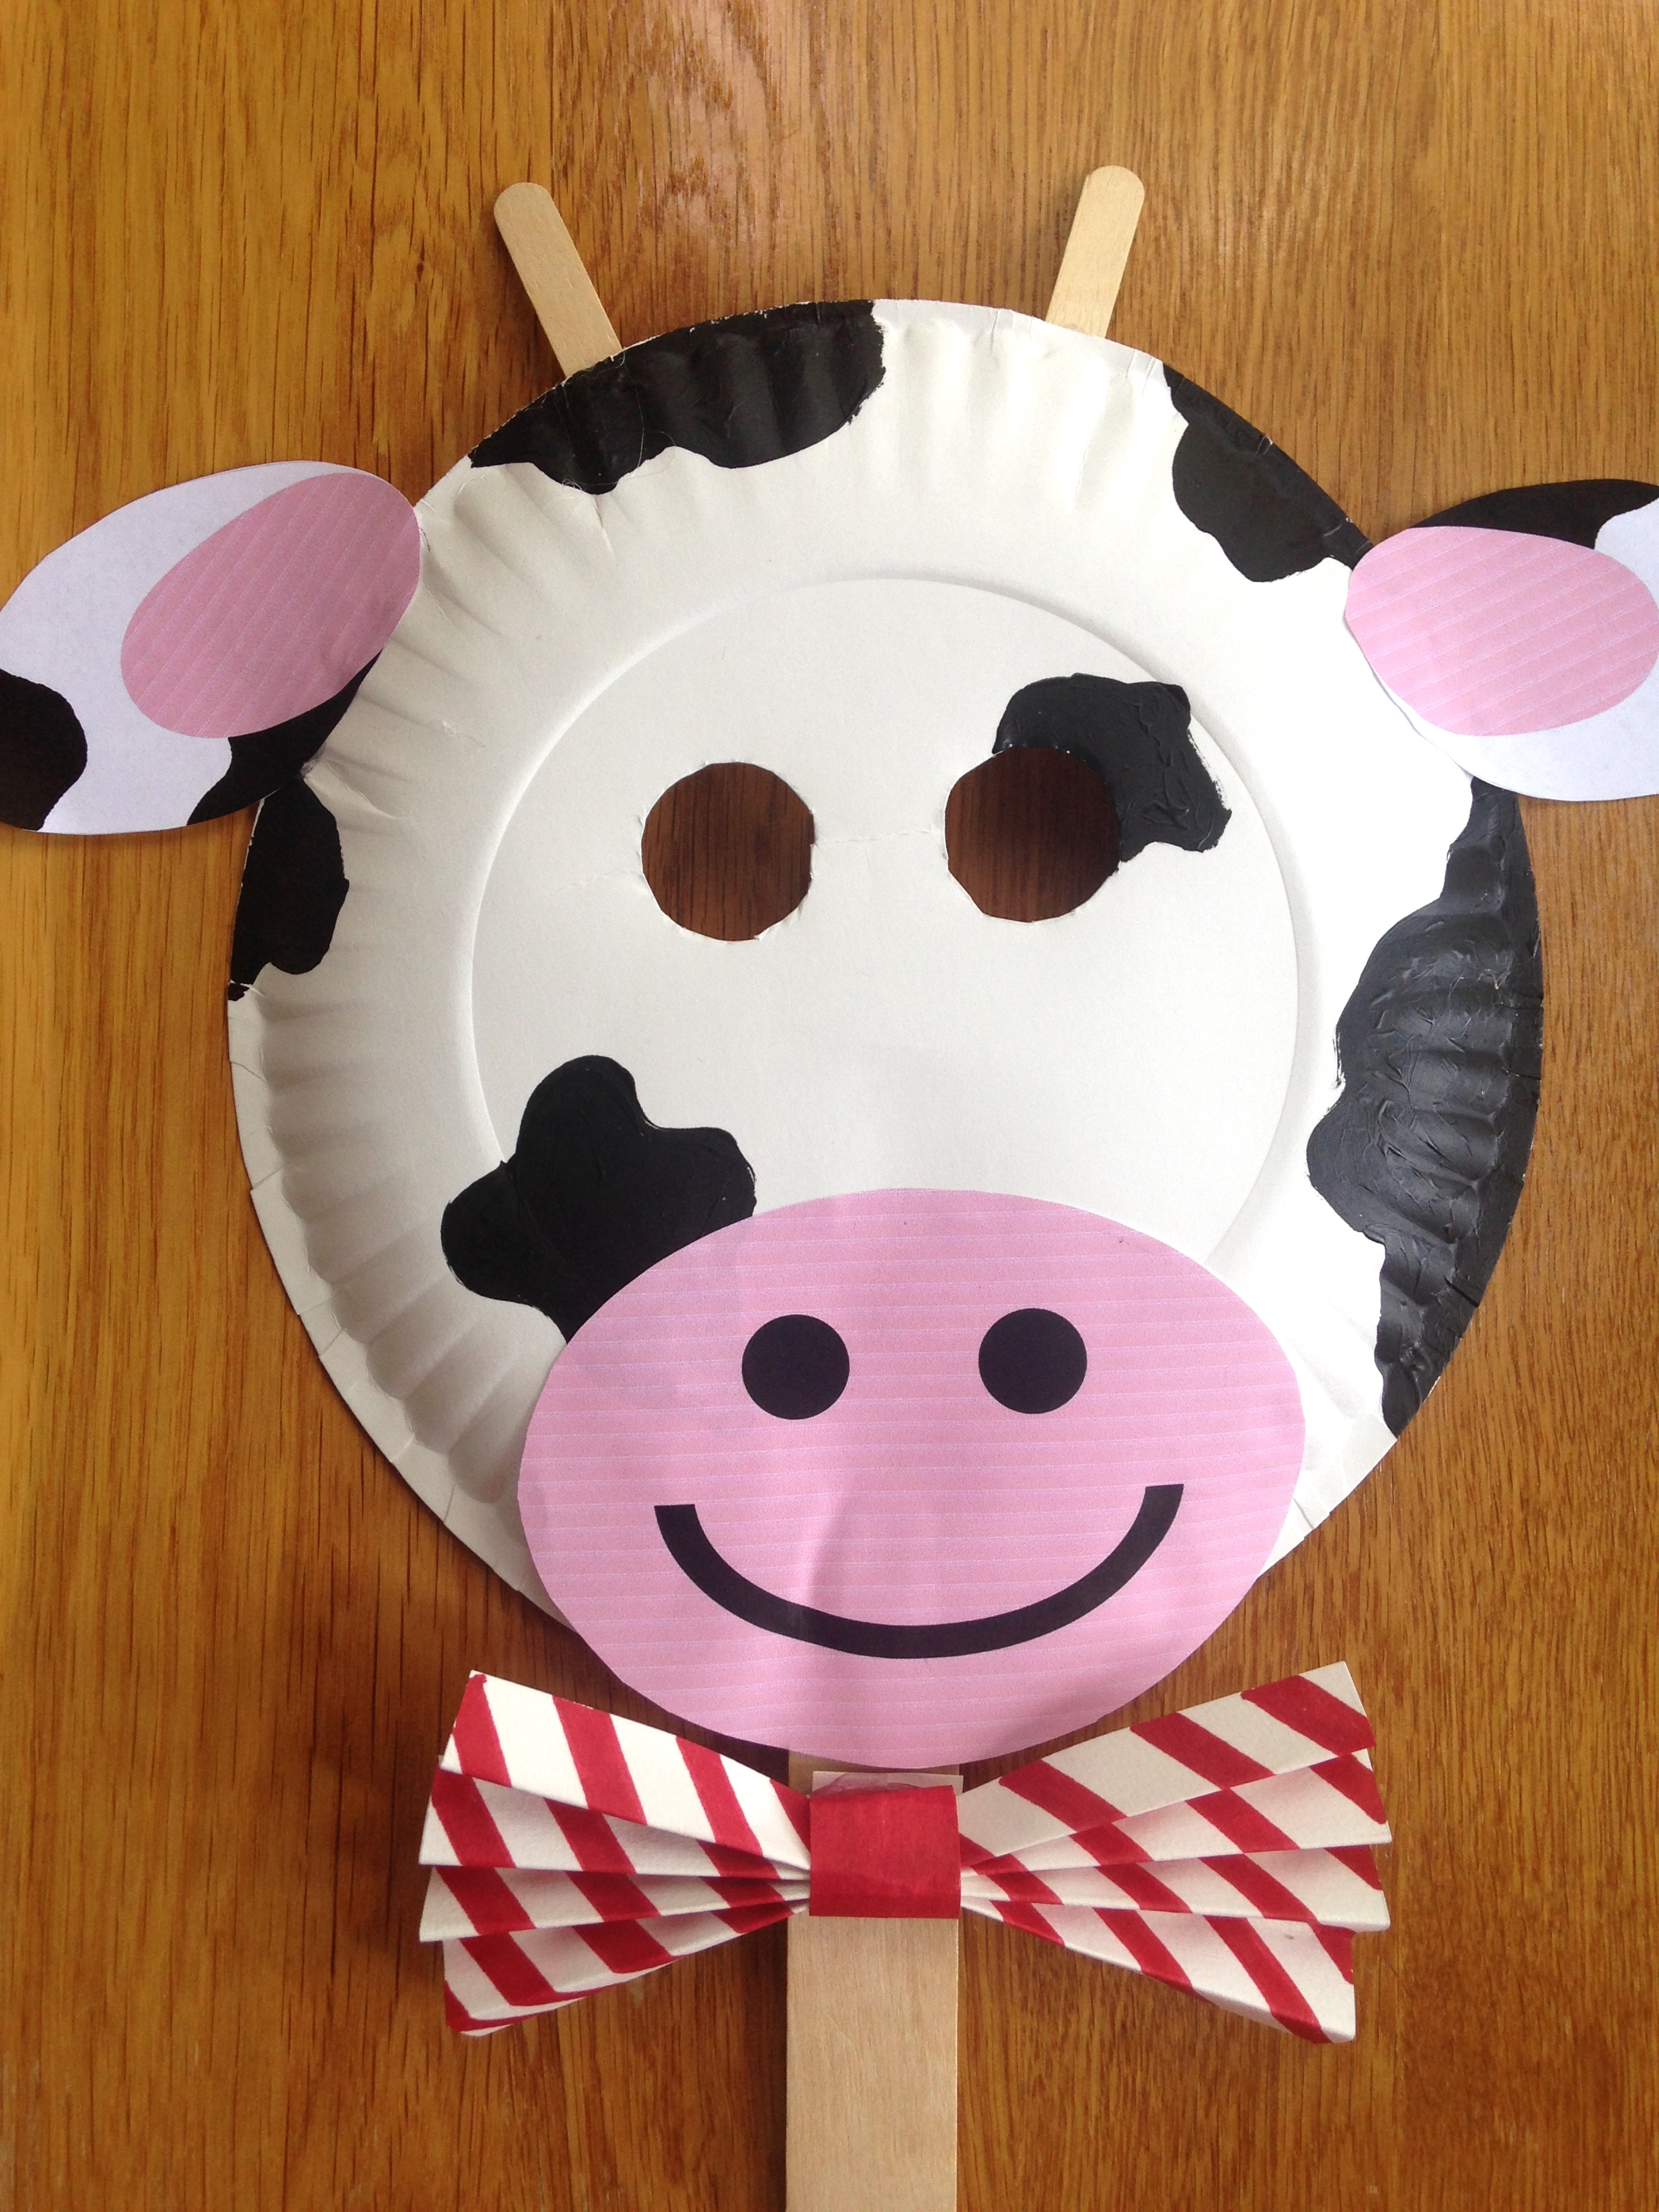 photograph about Chick Fil a Printable Cow Costume titled Chick-fil-A Cow Working day Paper Plate Cow Masks With Totally free